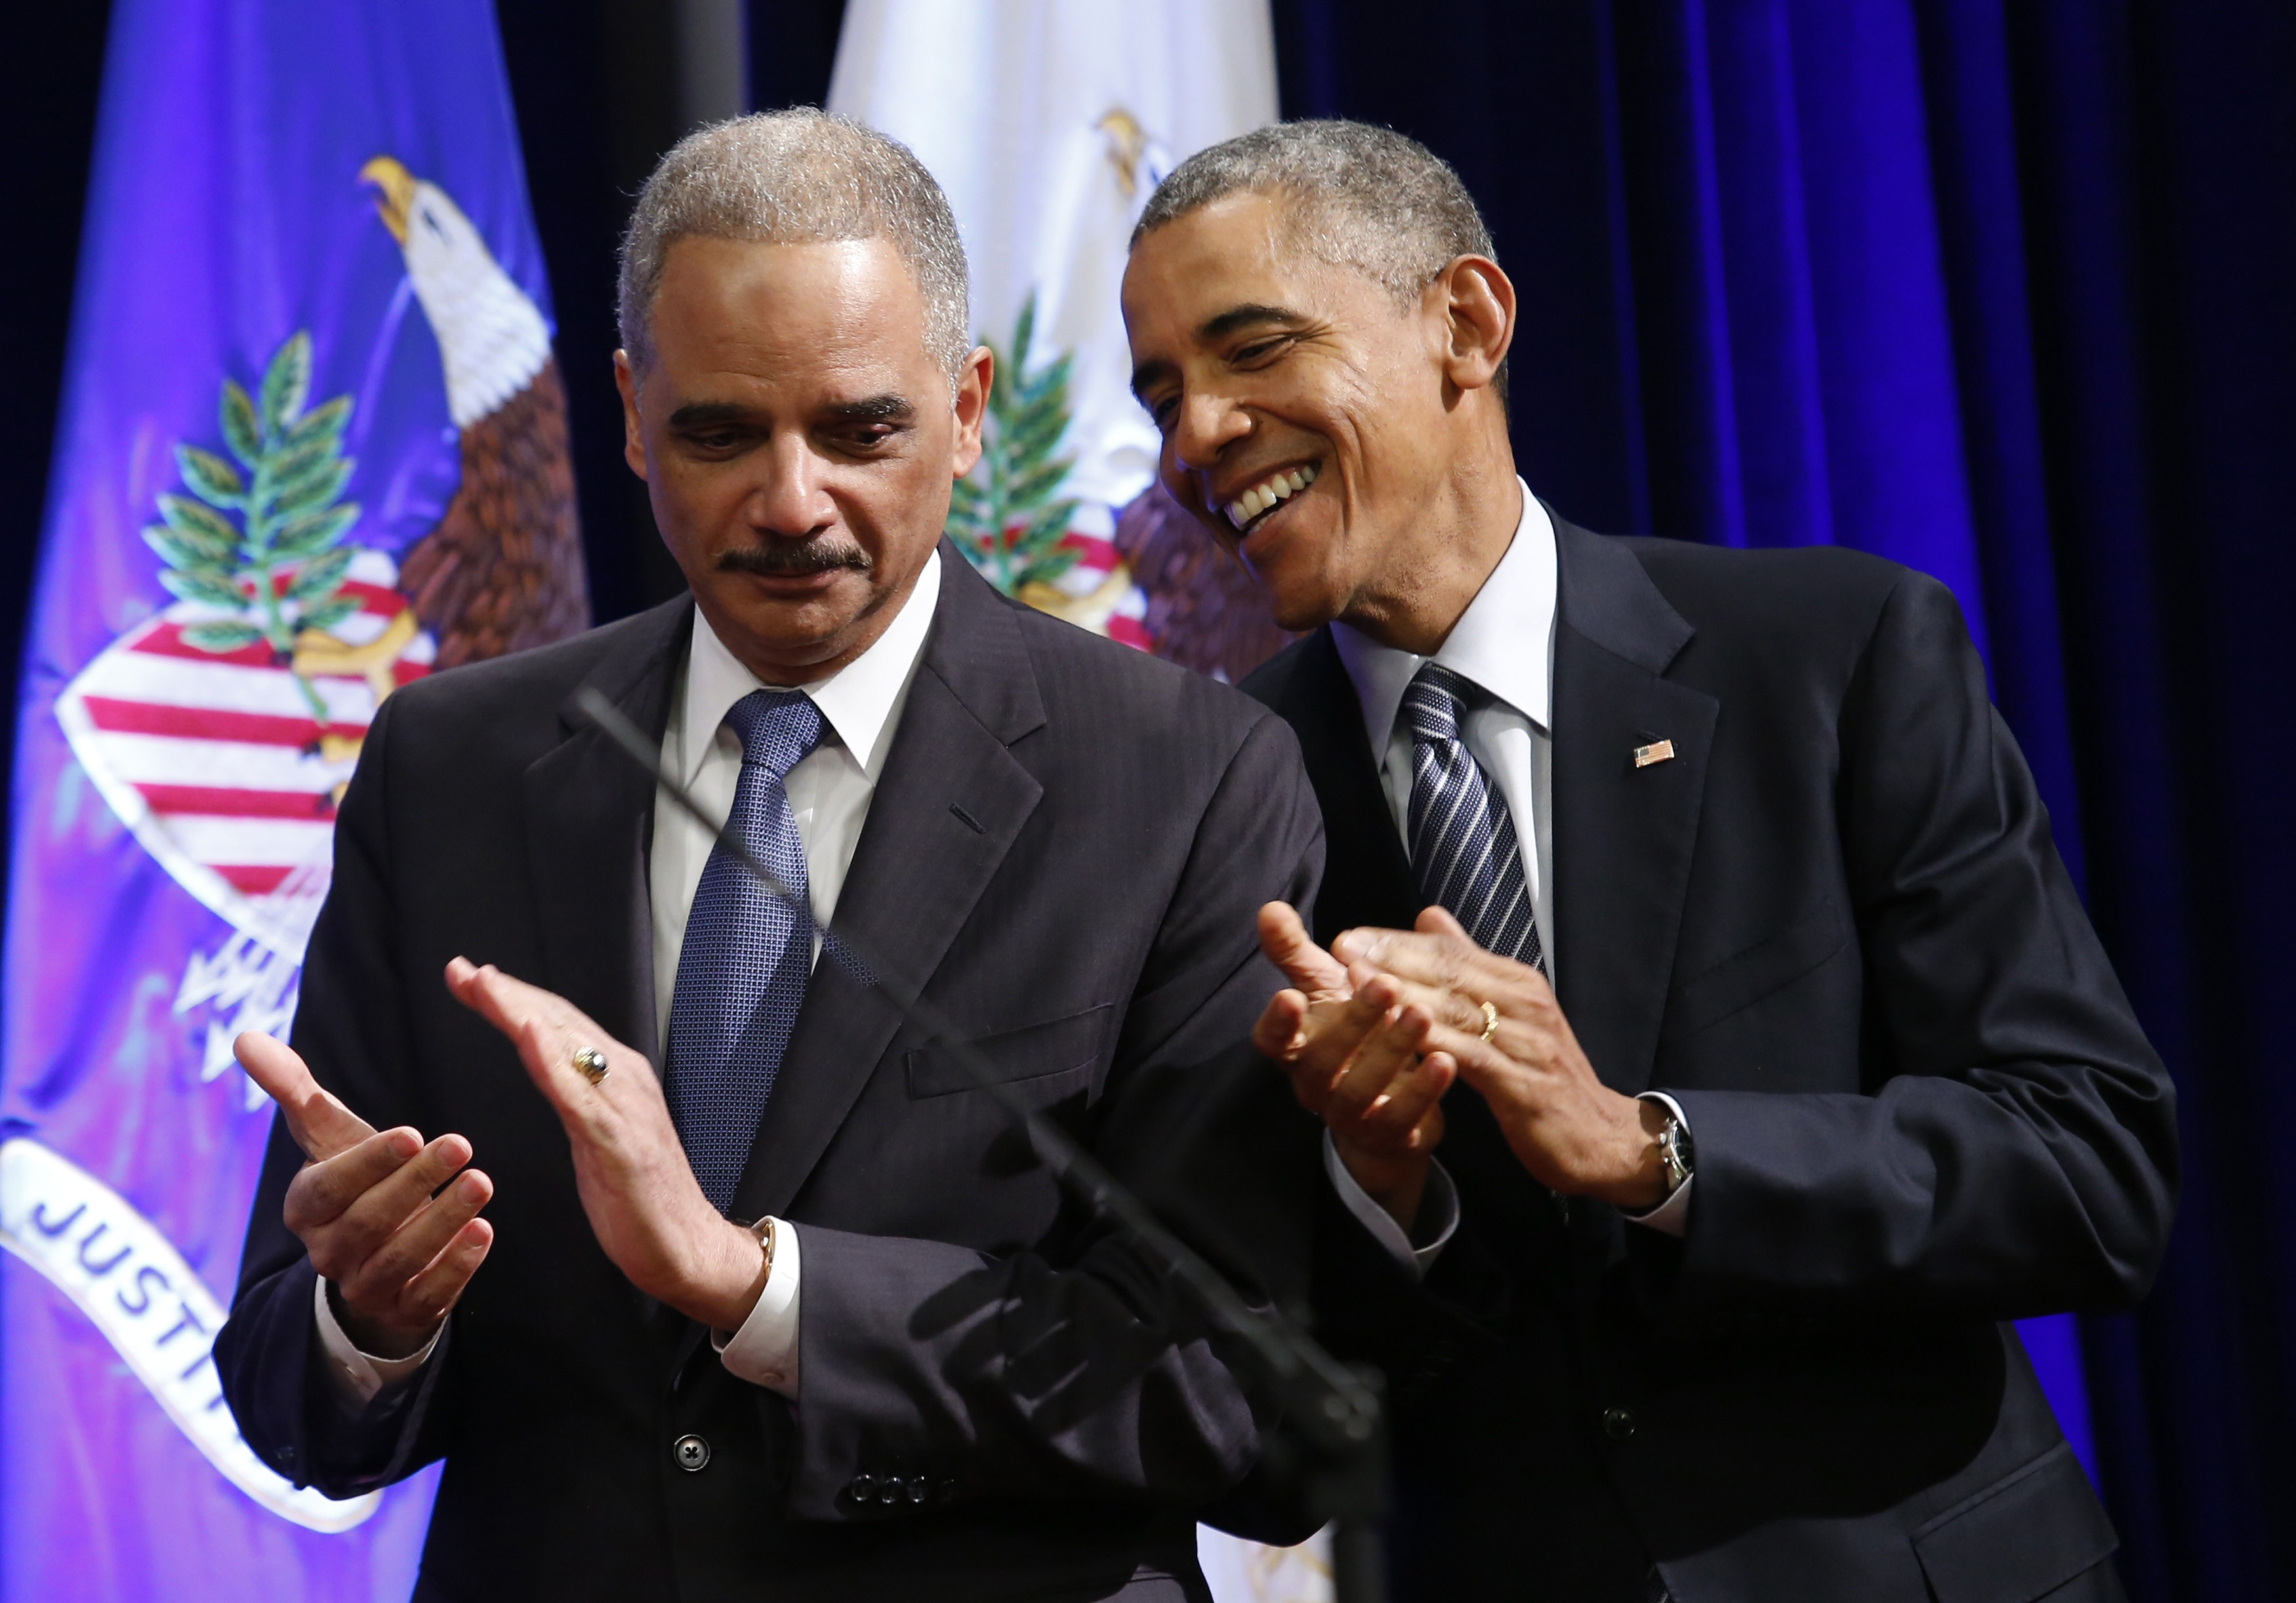 US President Barack Obama (R) talks to outgoing Attorney General Eric Holder at the portrait unveiling ceremony at the Justice Department in Washington, DC on February 27, 2015. The event marks Holder's anticipated departure after more than six years of service. (YURI GRIPAS/AFP/Getty Images)